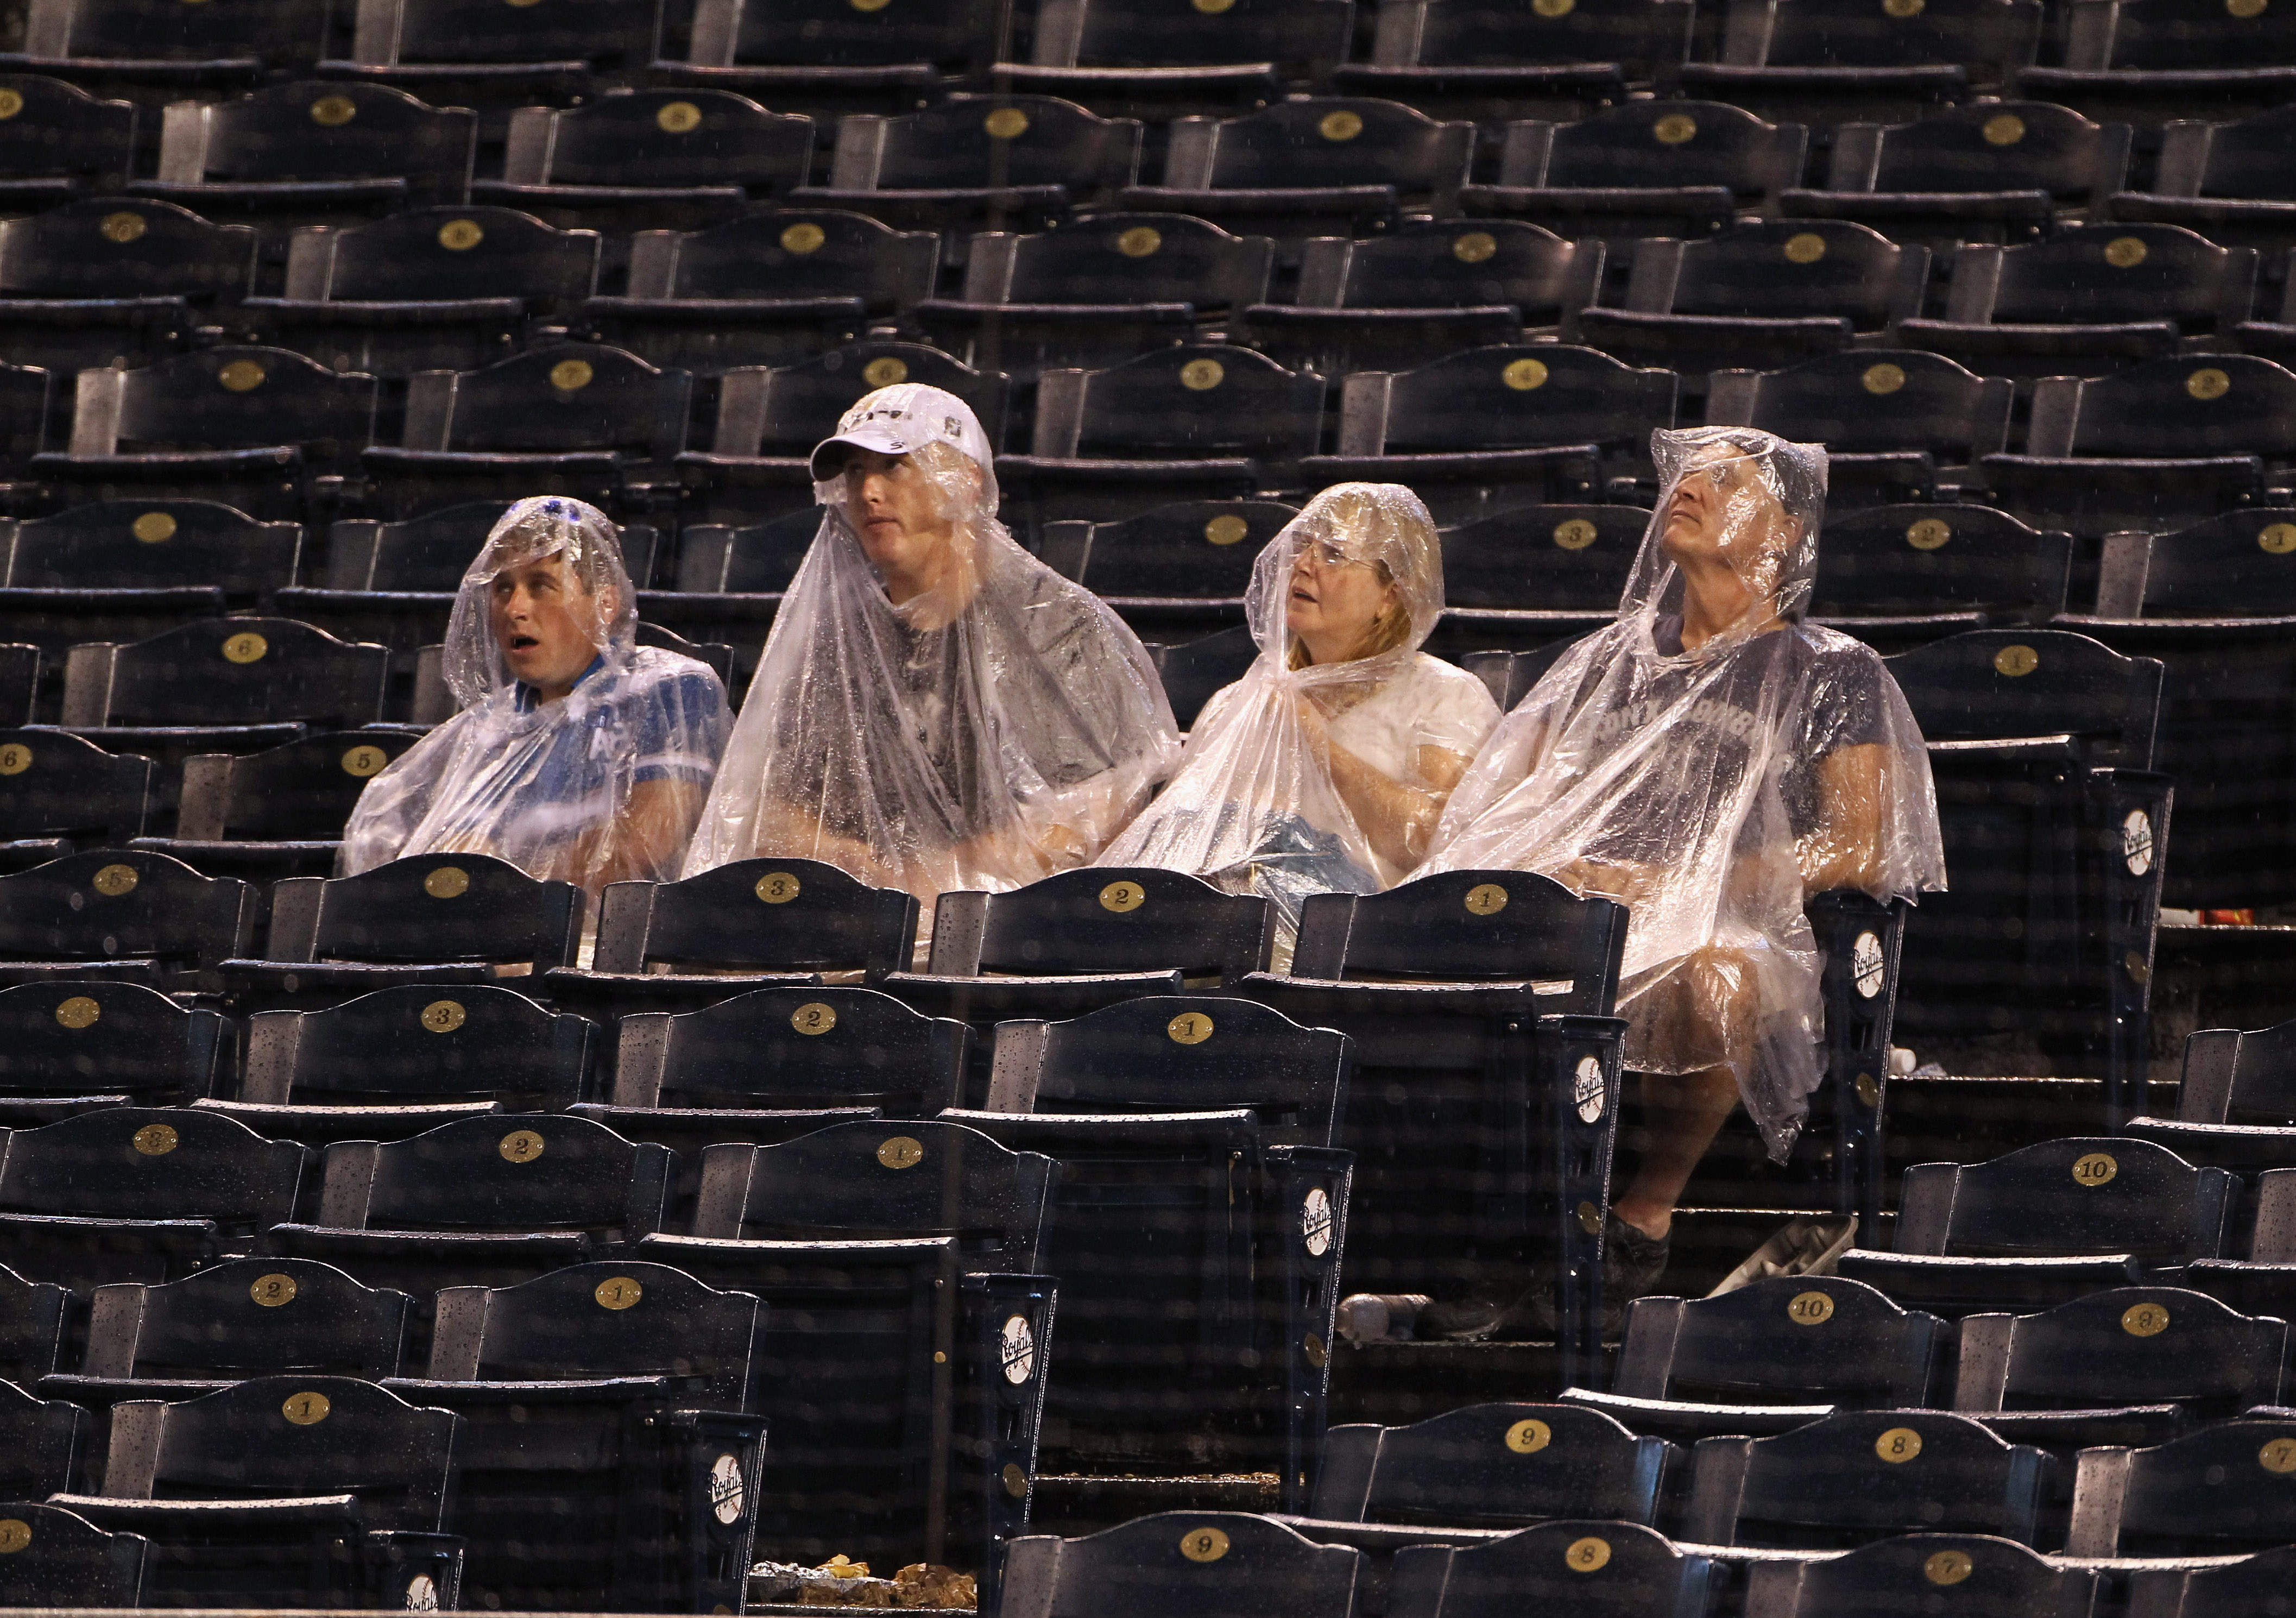 KANSAS CITY, MO - AUGUST 13:  Fans wait in the stands during a rain delay in the game between the New York Yankees and the Kansas City Royals on August 13, 2010 at Kauffman Stadium in Kansas City, Missouri.  (Photo by Jamie Squire/Getty Images)